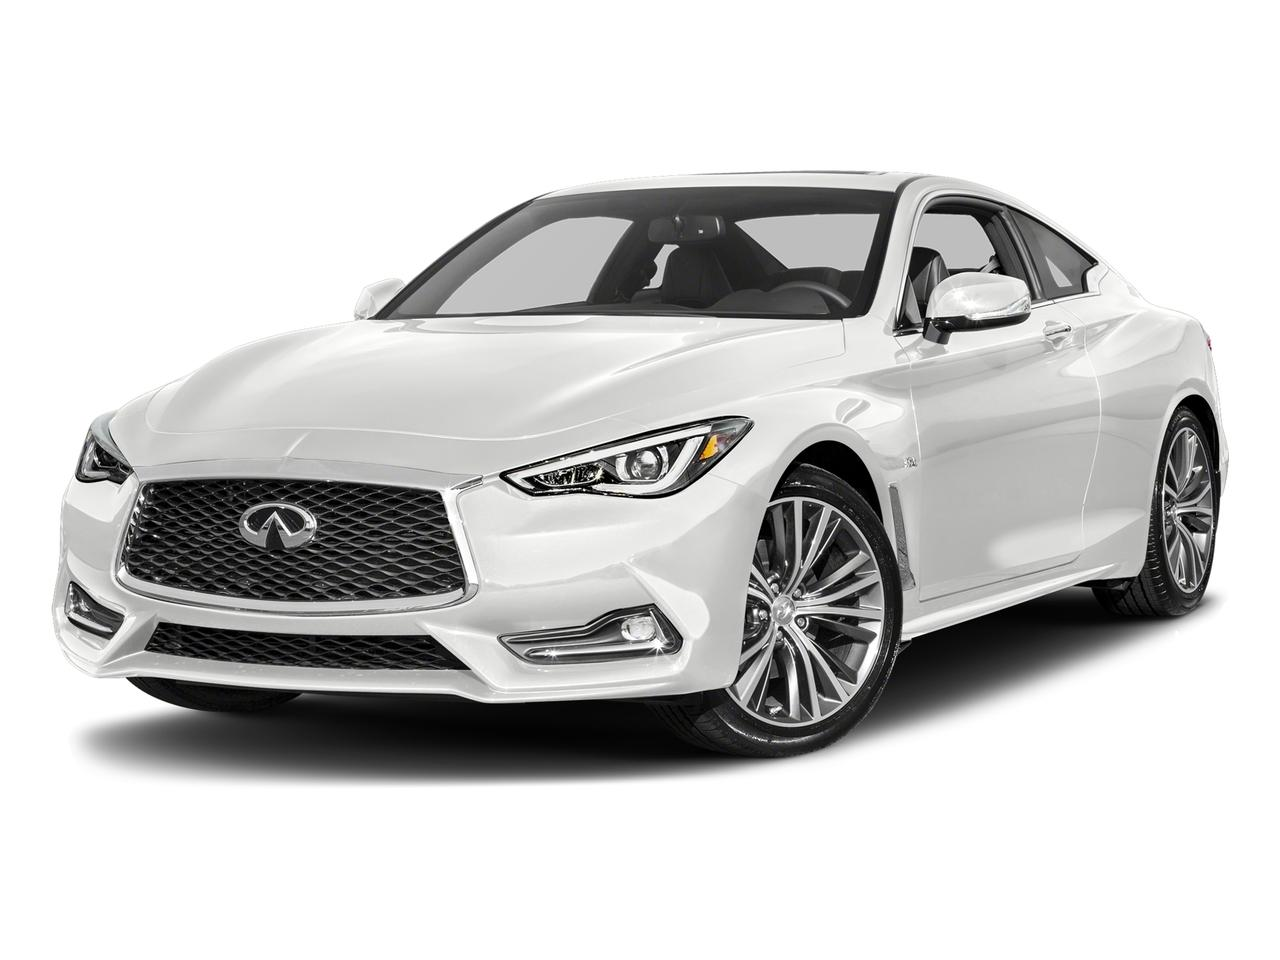 2017 INFINITI Q60 Vehicle Photo in San Antonio, TX 78238